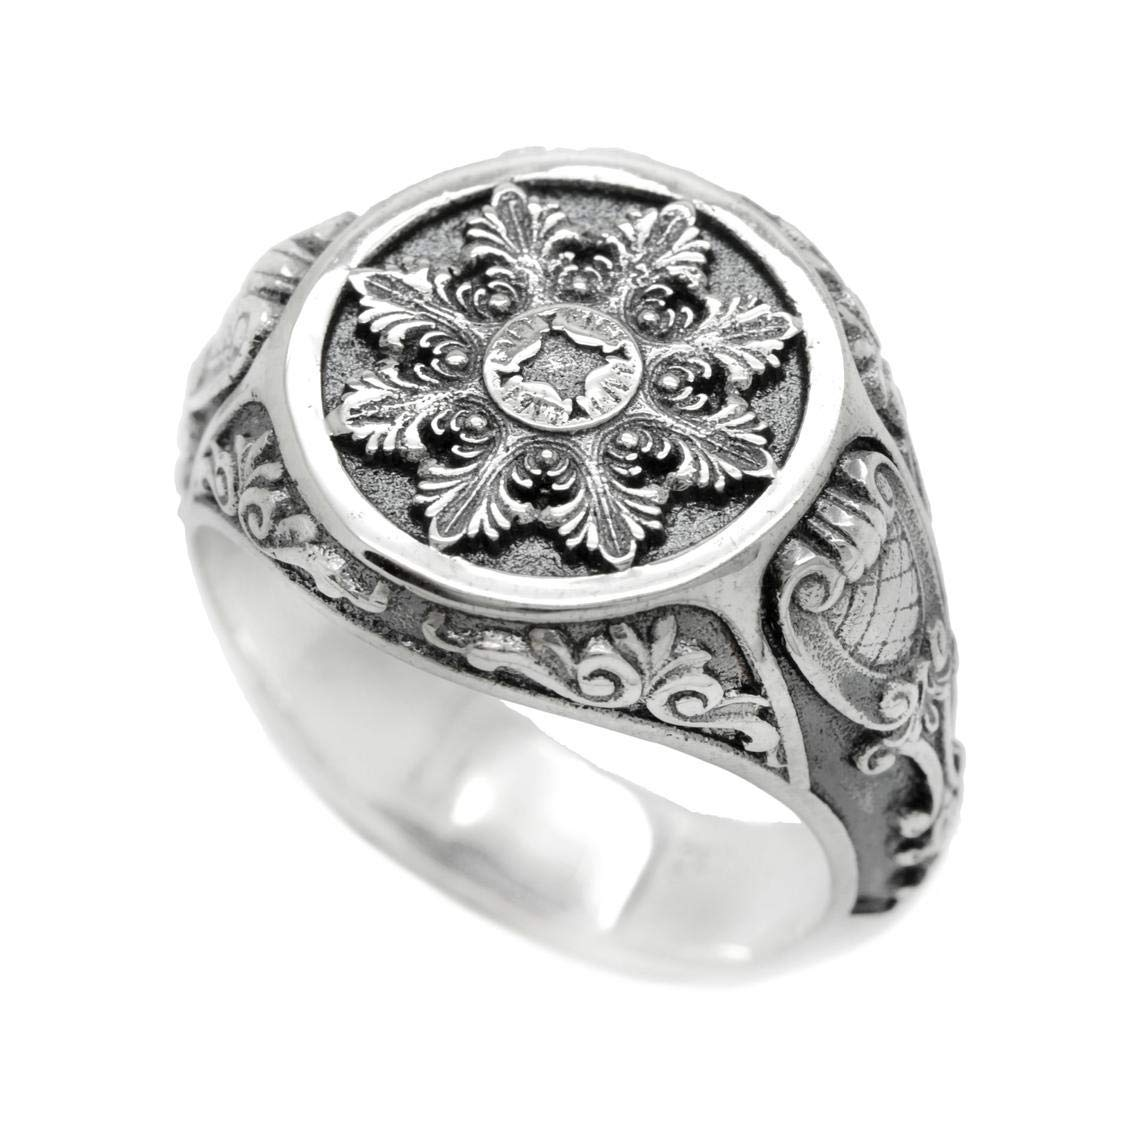 Old-fashion Patterns 55% OFF Mens Silver 35% OFF Signet